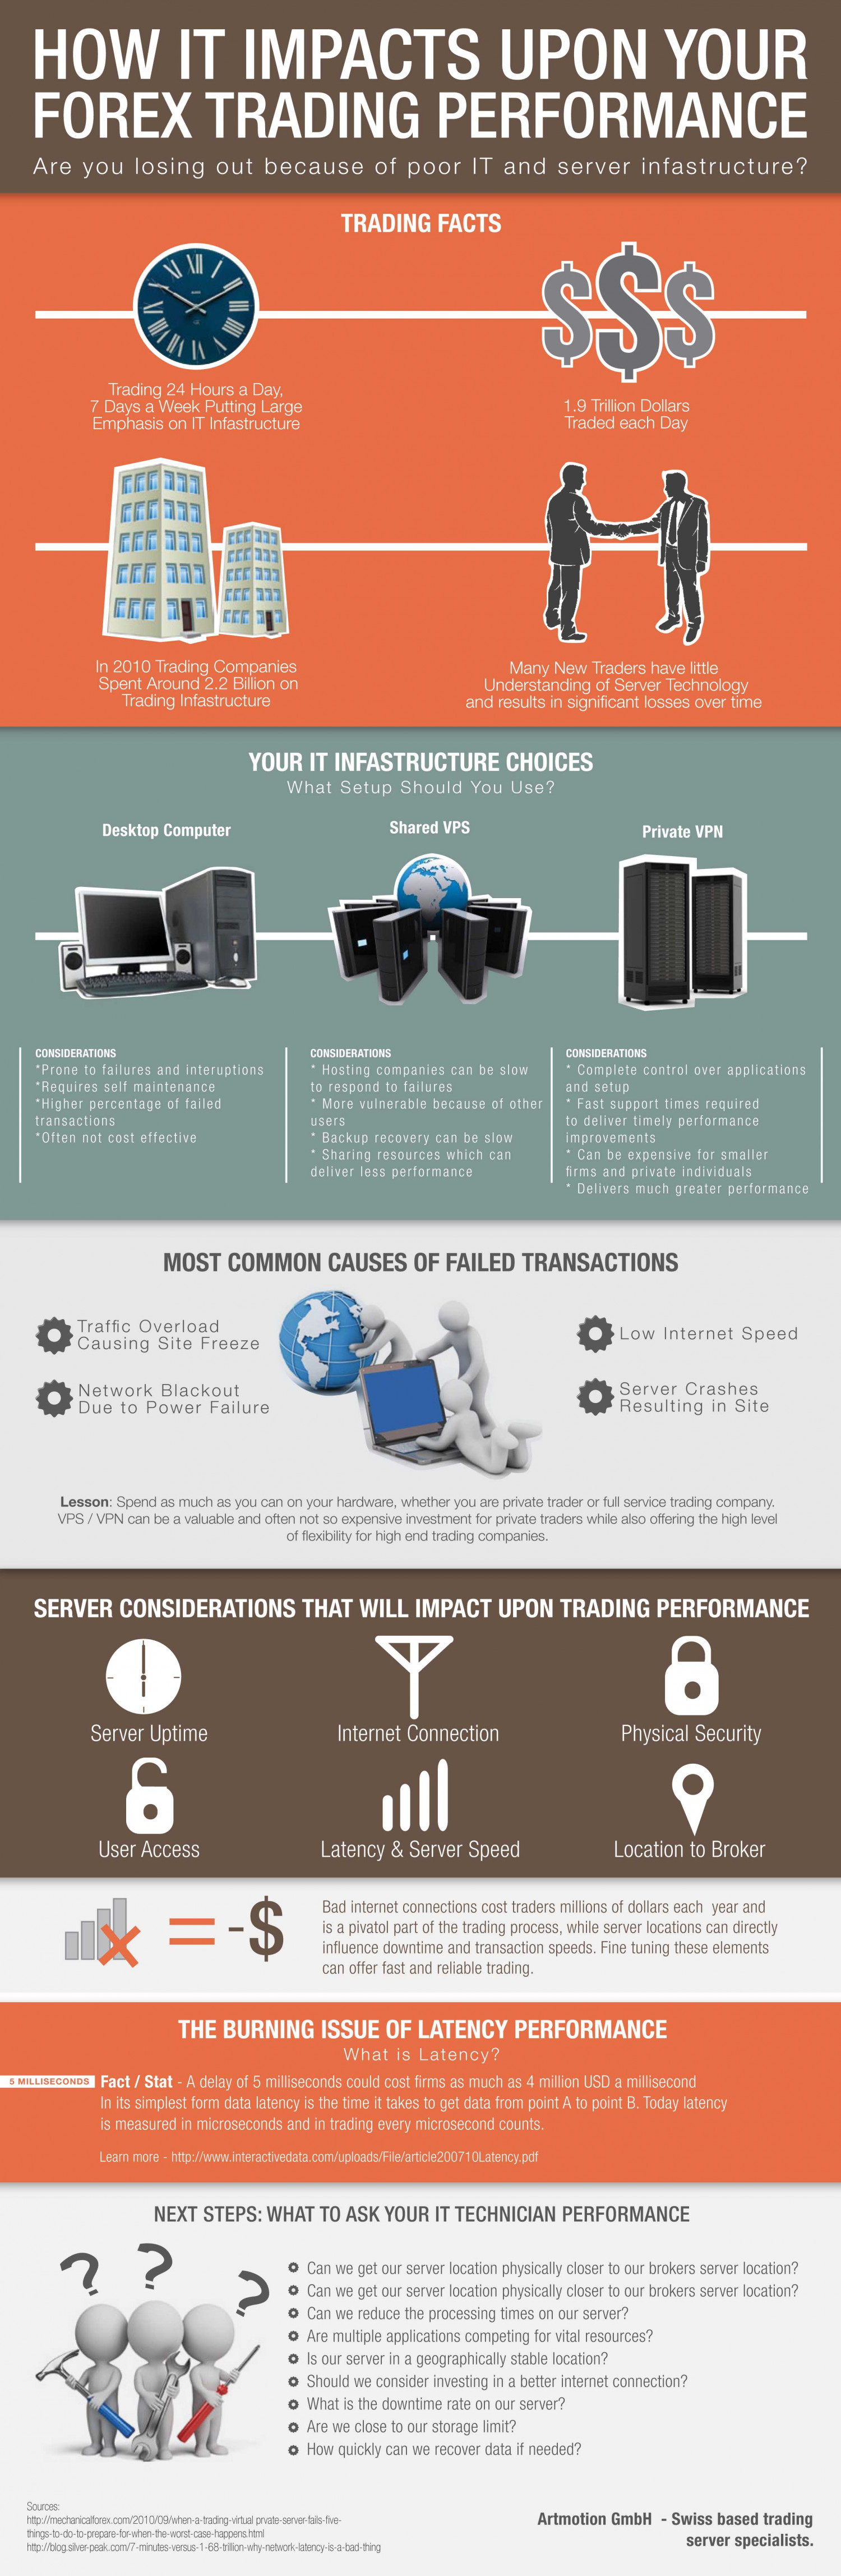 How IT Impacts Upon Your Trading Performance Infographic